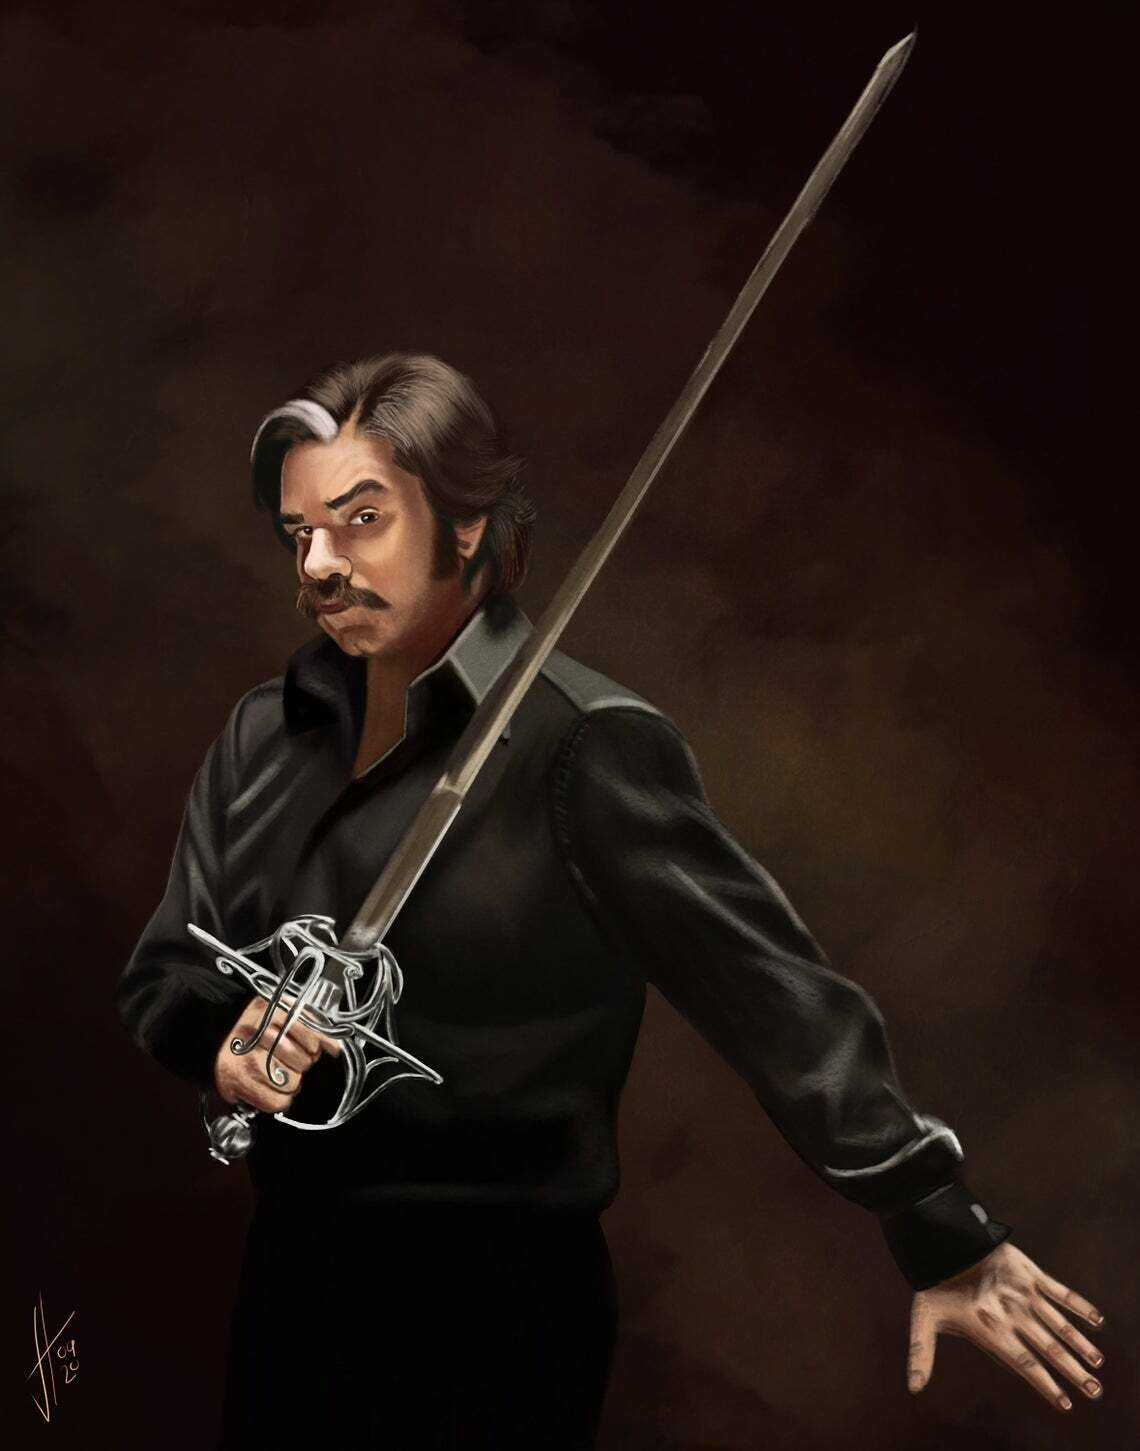 Toast of London Steven Toast Matt Berry art print